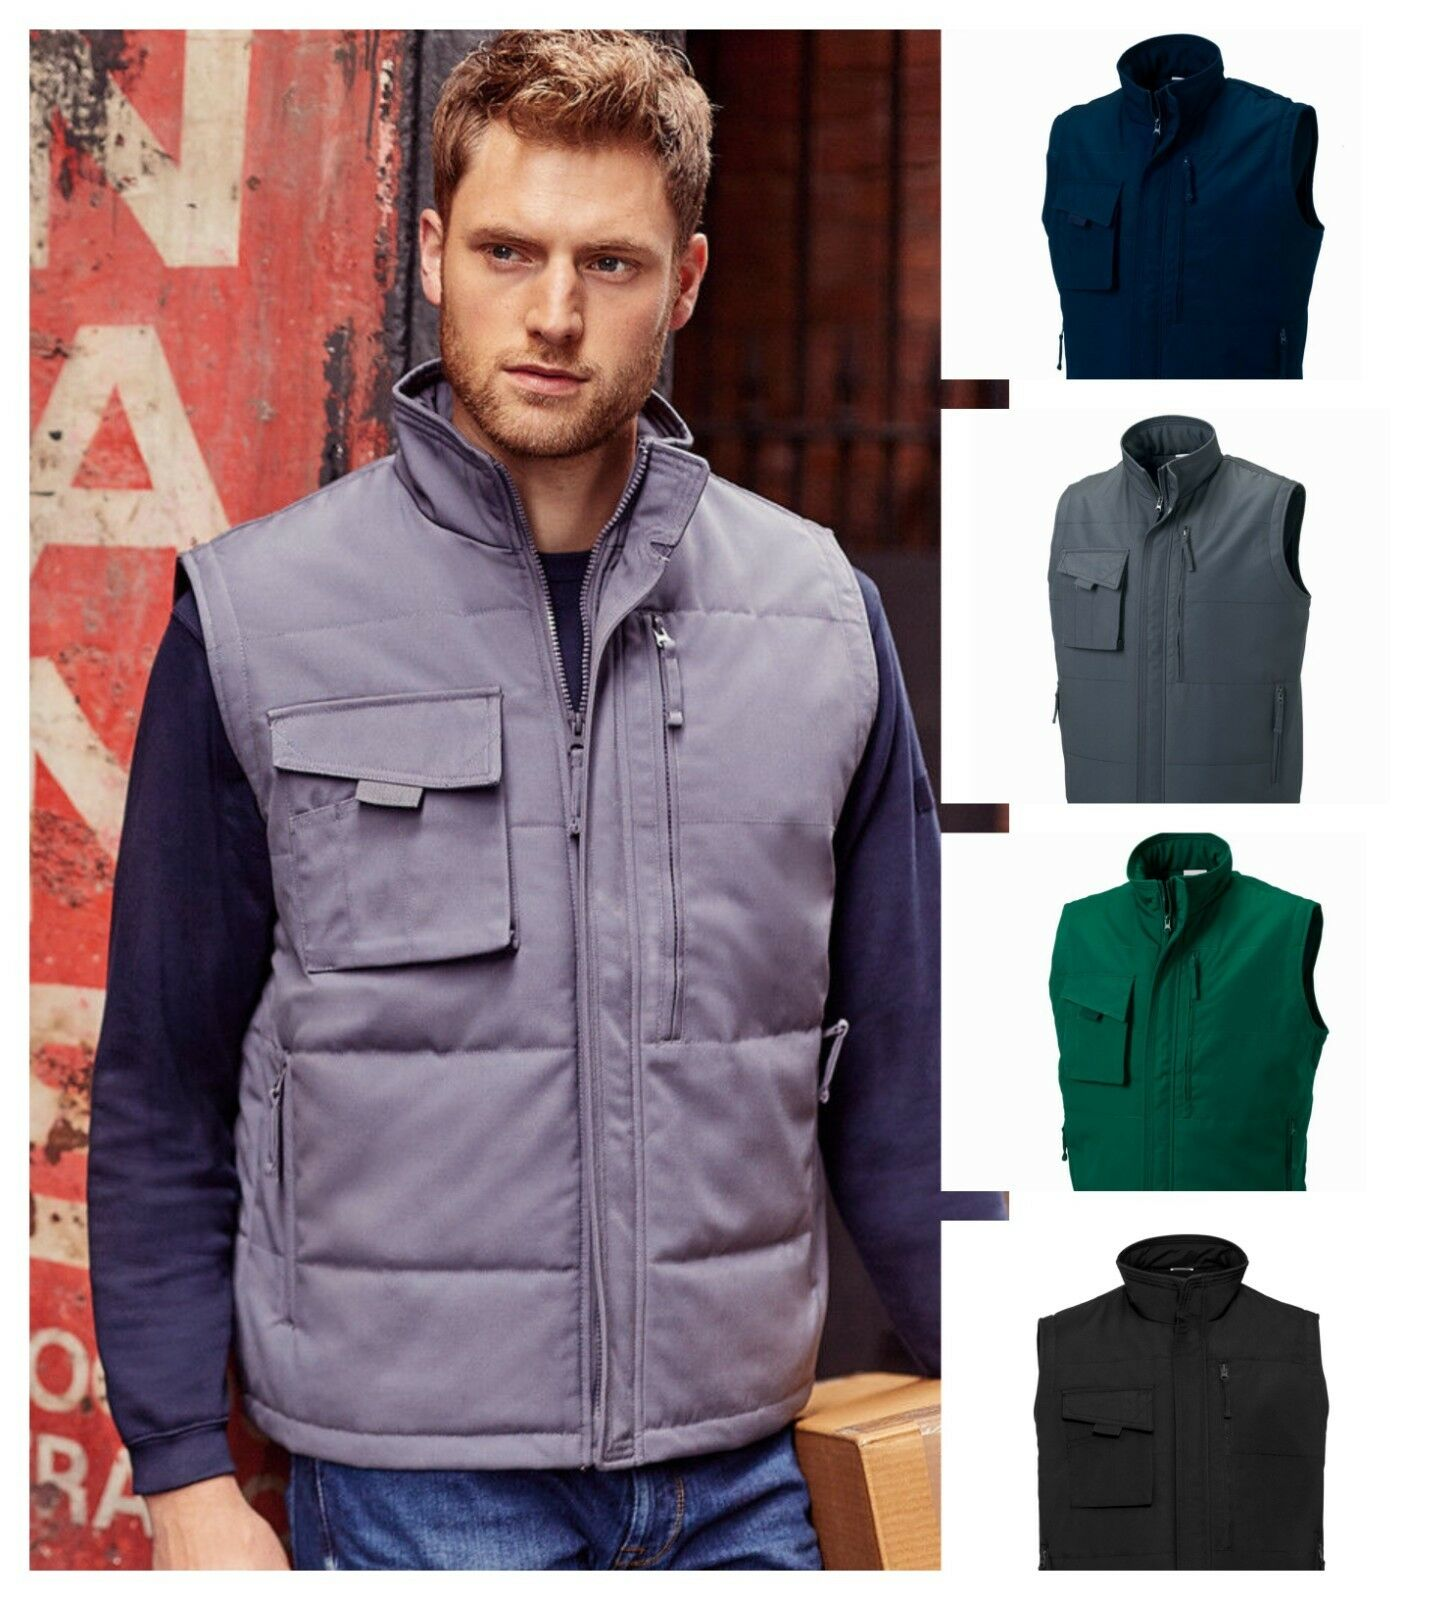 Russell - Gilet - Softshell, Zip Up, Sleeveless, Body warmer - Various Colours